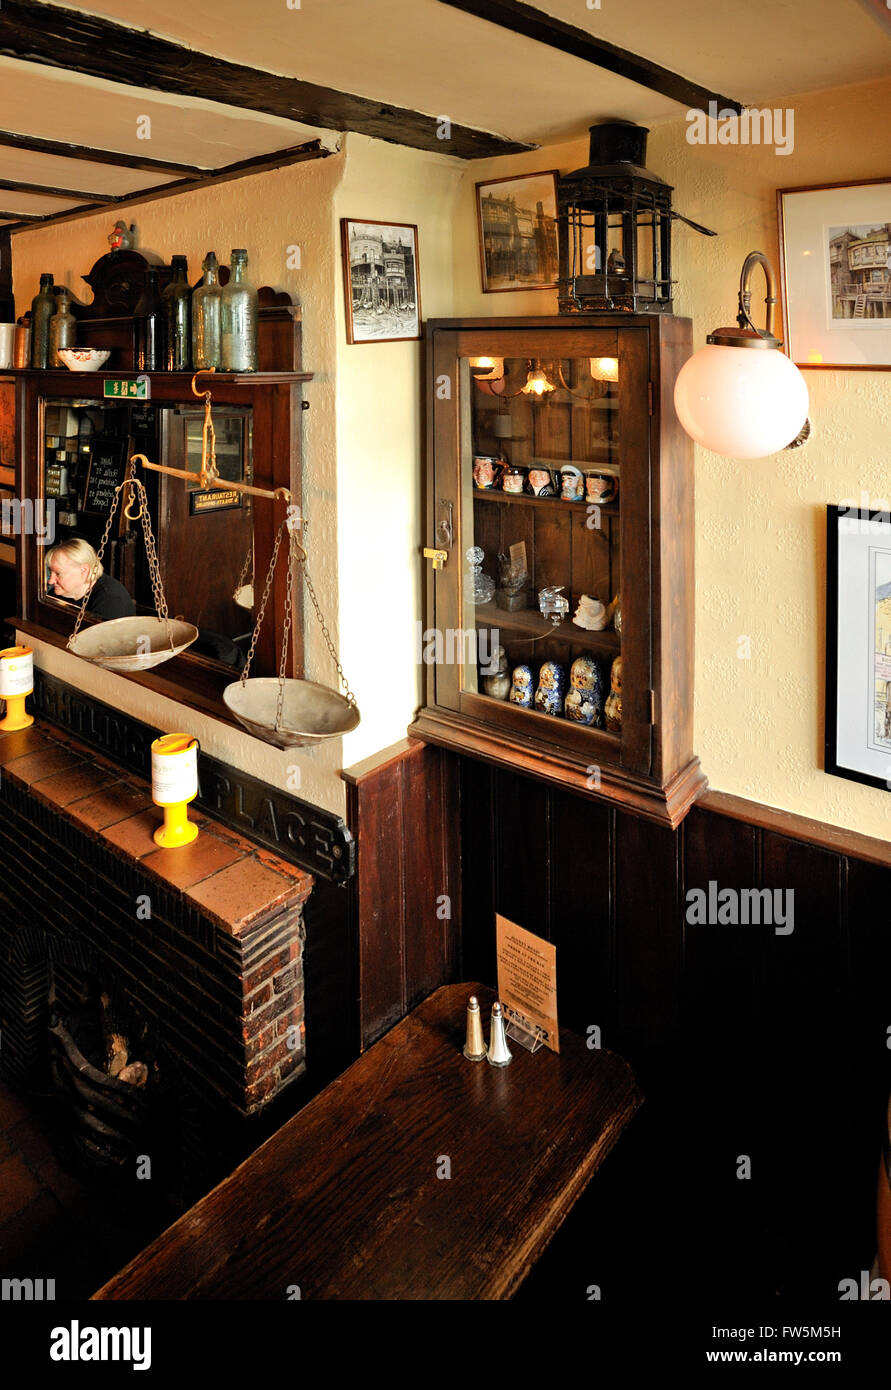 Interior of pub, with Victorian fittings, The Grapes public house, Limehouse, Narrow St., , over the River Thames. - Stock Image